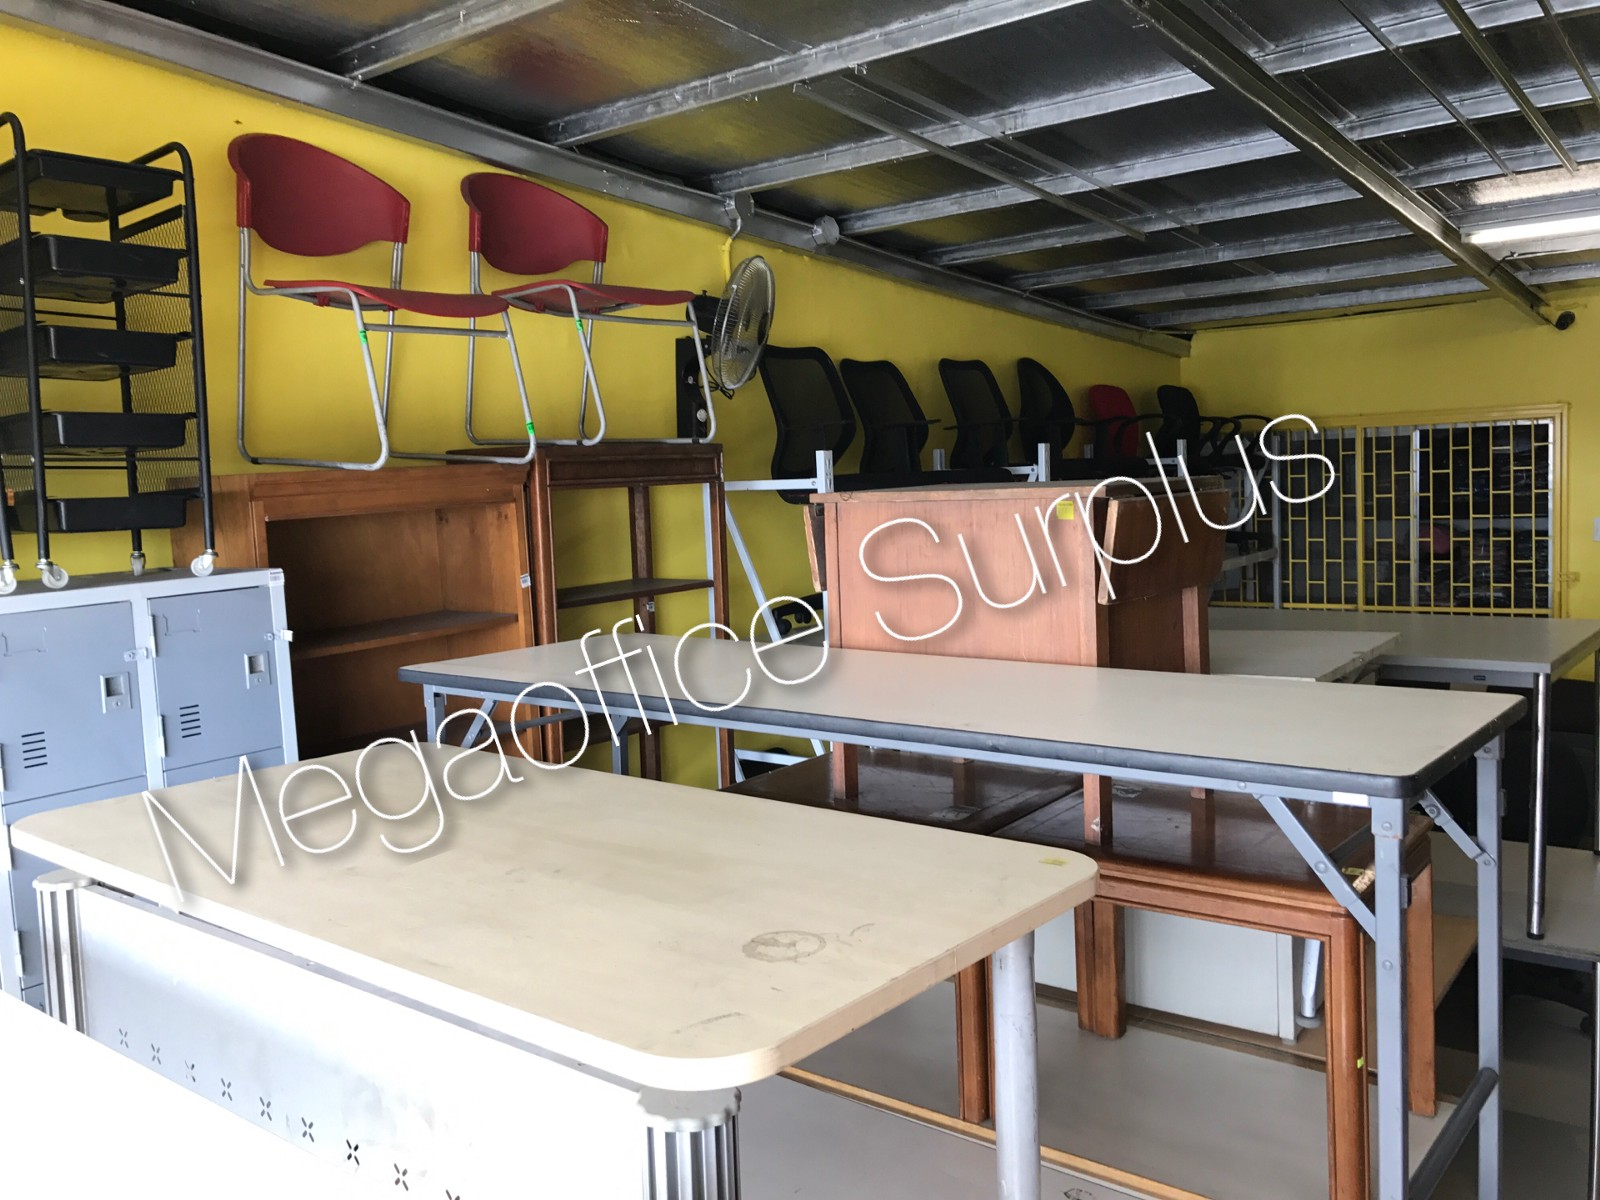 Megaoffice Surplus Gest Used Furniture Supplier Chain In The Philippines Brand New Chairs Tables Lockers Steel File Cabinet Also Available